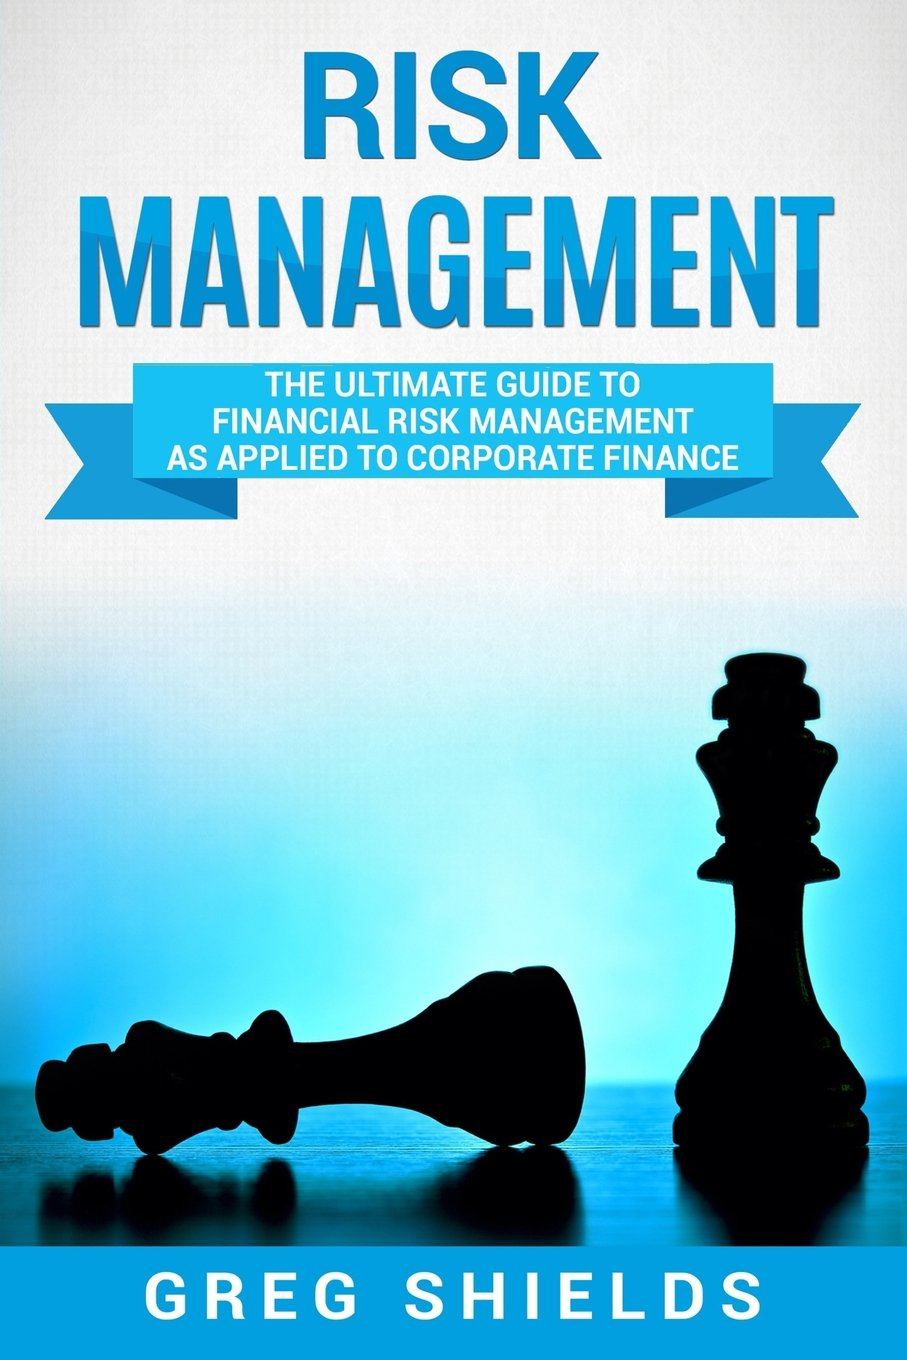 Risk Management: The Ultimate Guide to Financial Risk Management as Applied to Corporate Finance